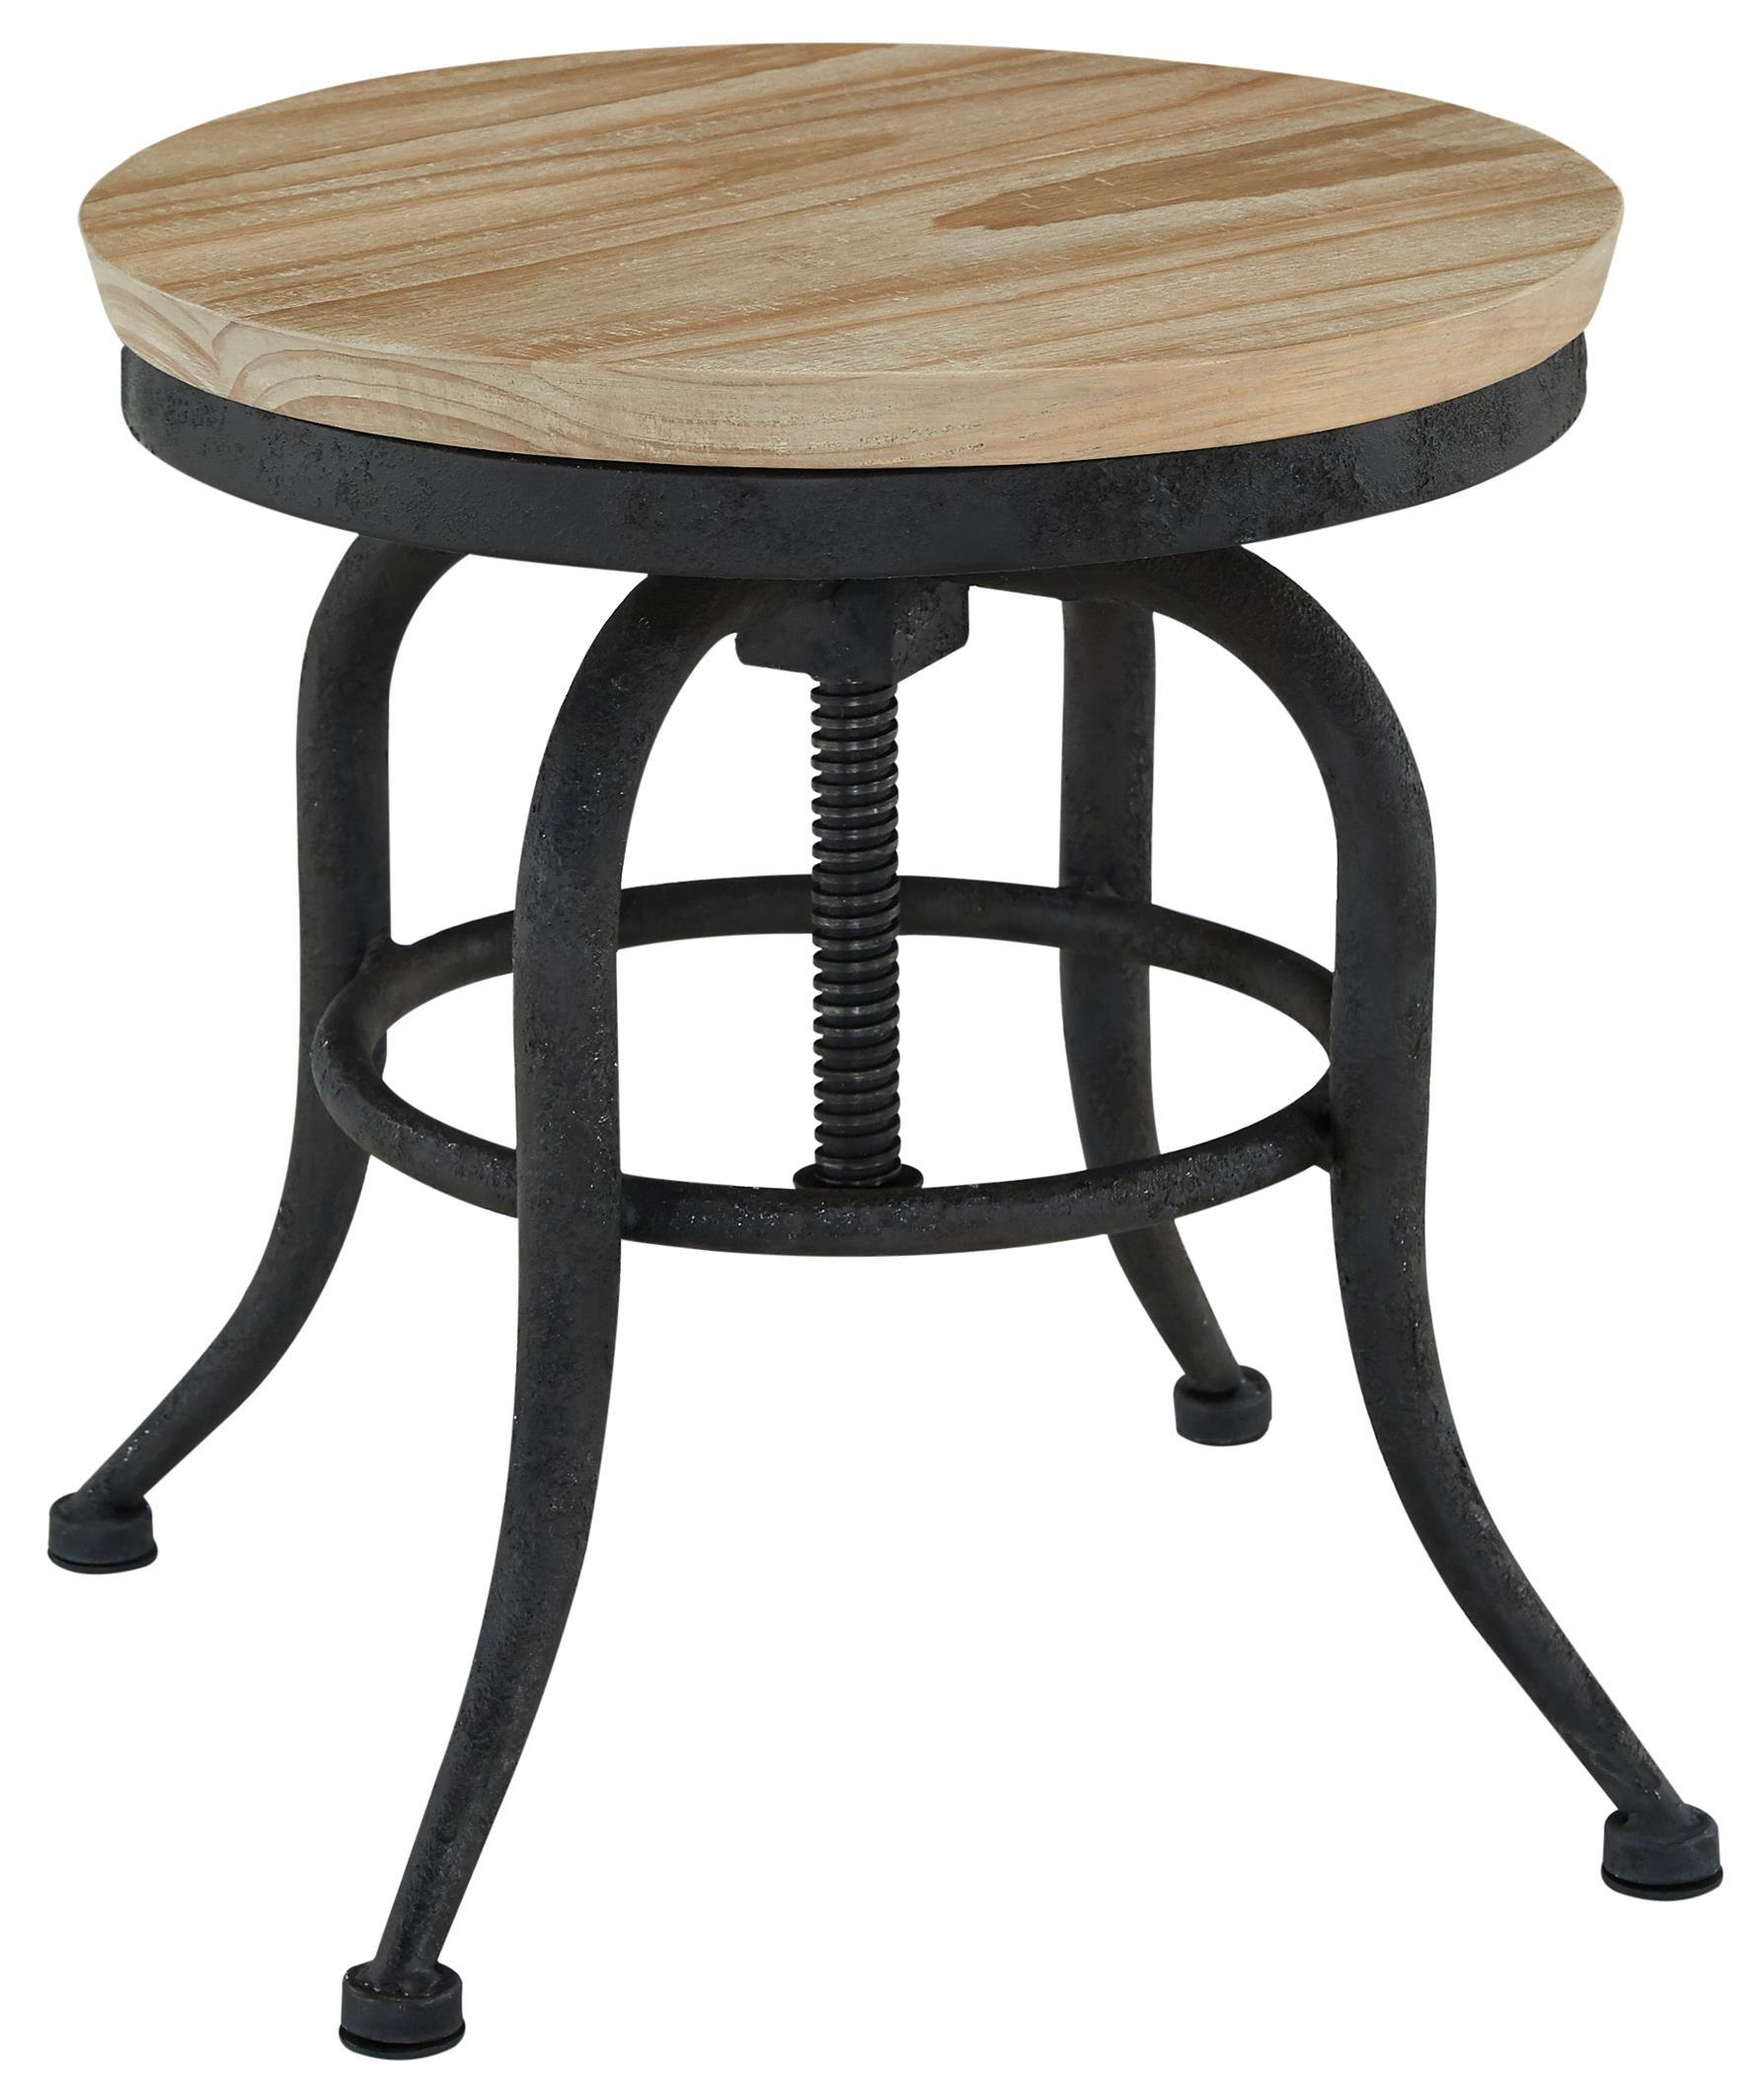 Signature Design by Ashley Shennifin Stool - Item Number: H862-01